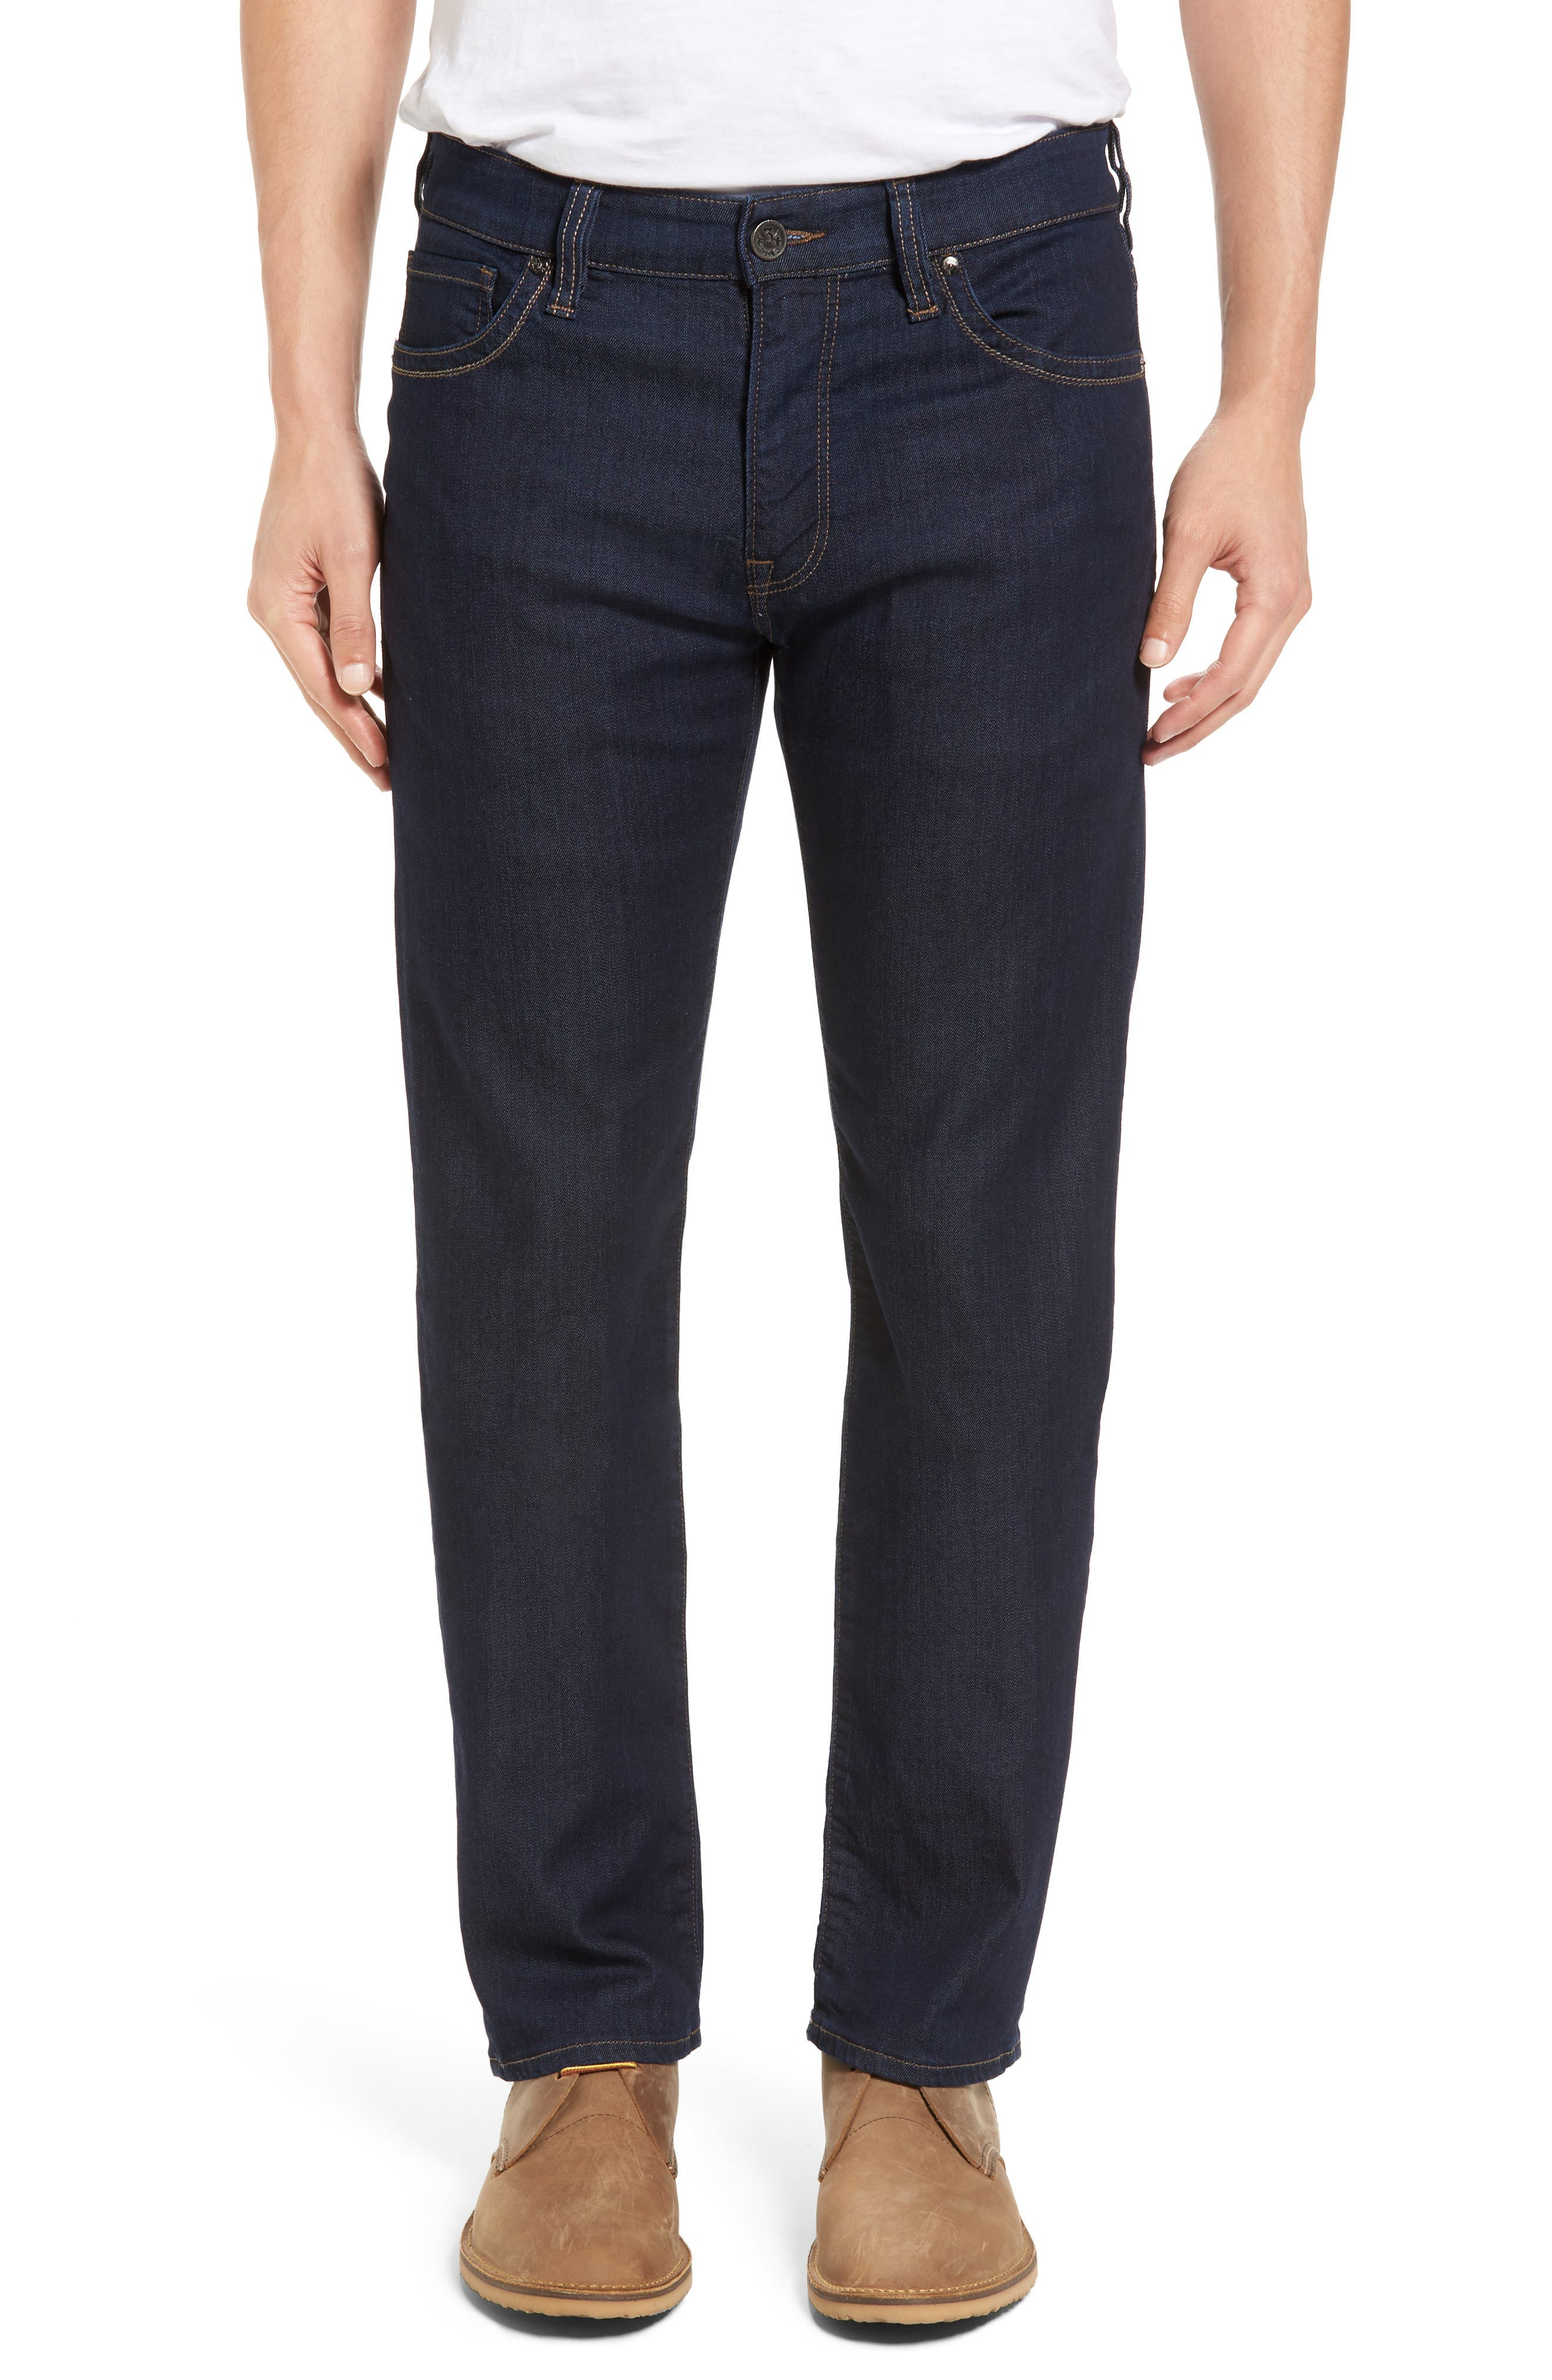 Courage Straight Leg Jeans,                             Main thumbnail 1, color,                             RINSE VINTAGE